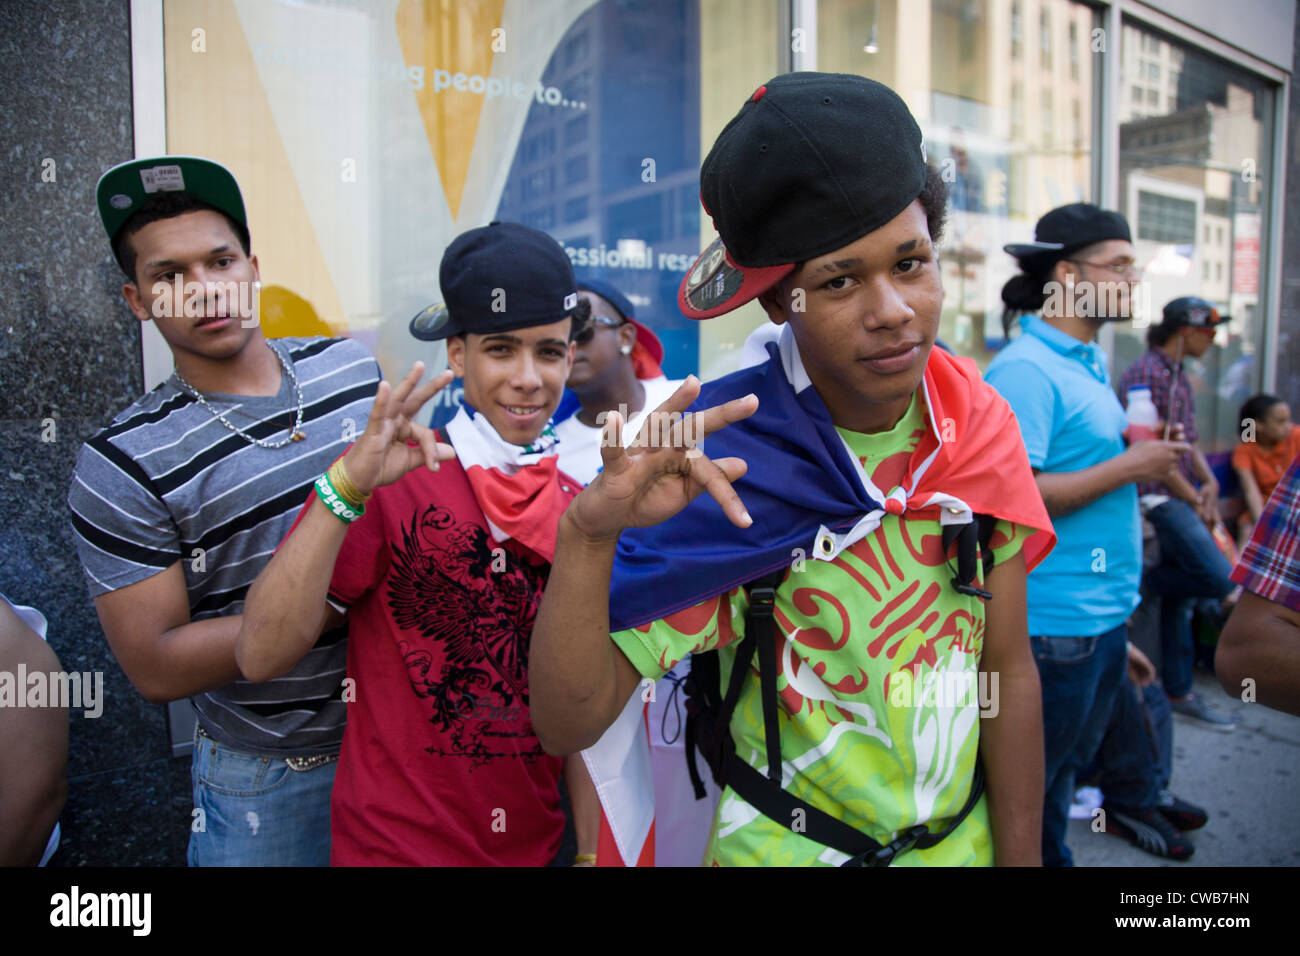 A group of energetic young teens on Avenue of the Americas for the Dominican Day Parade in New York City. - Stock Image